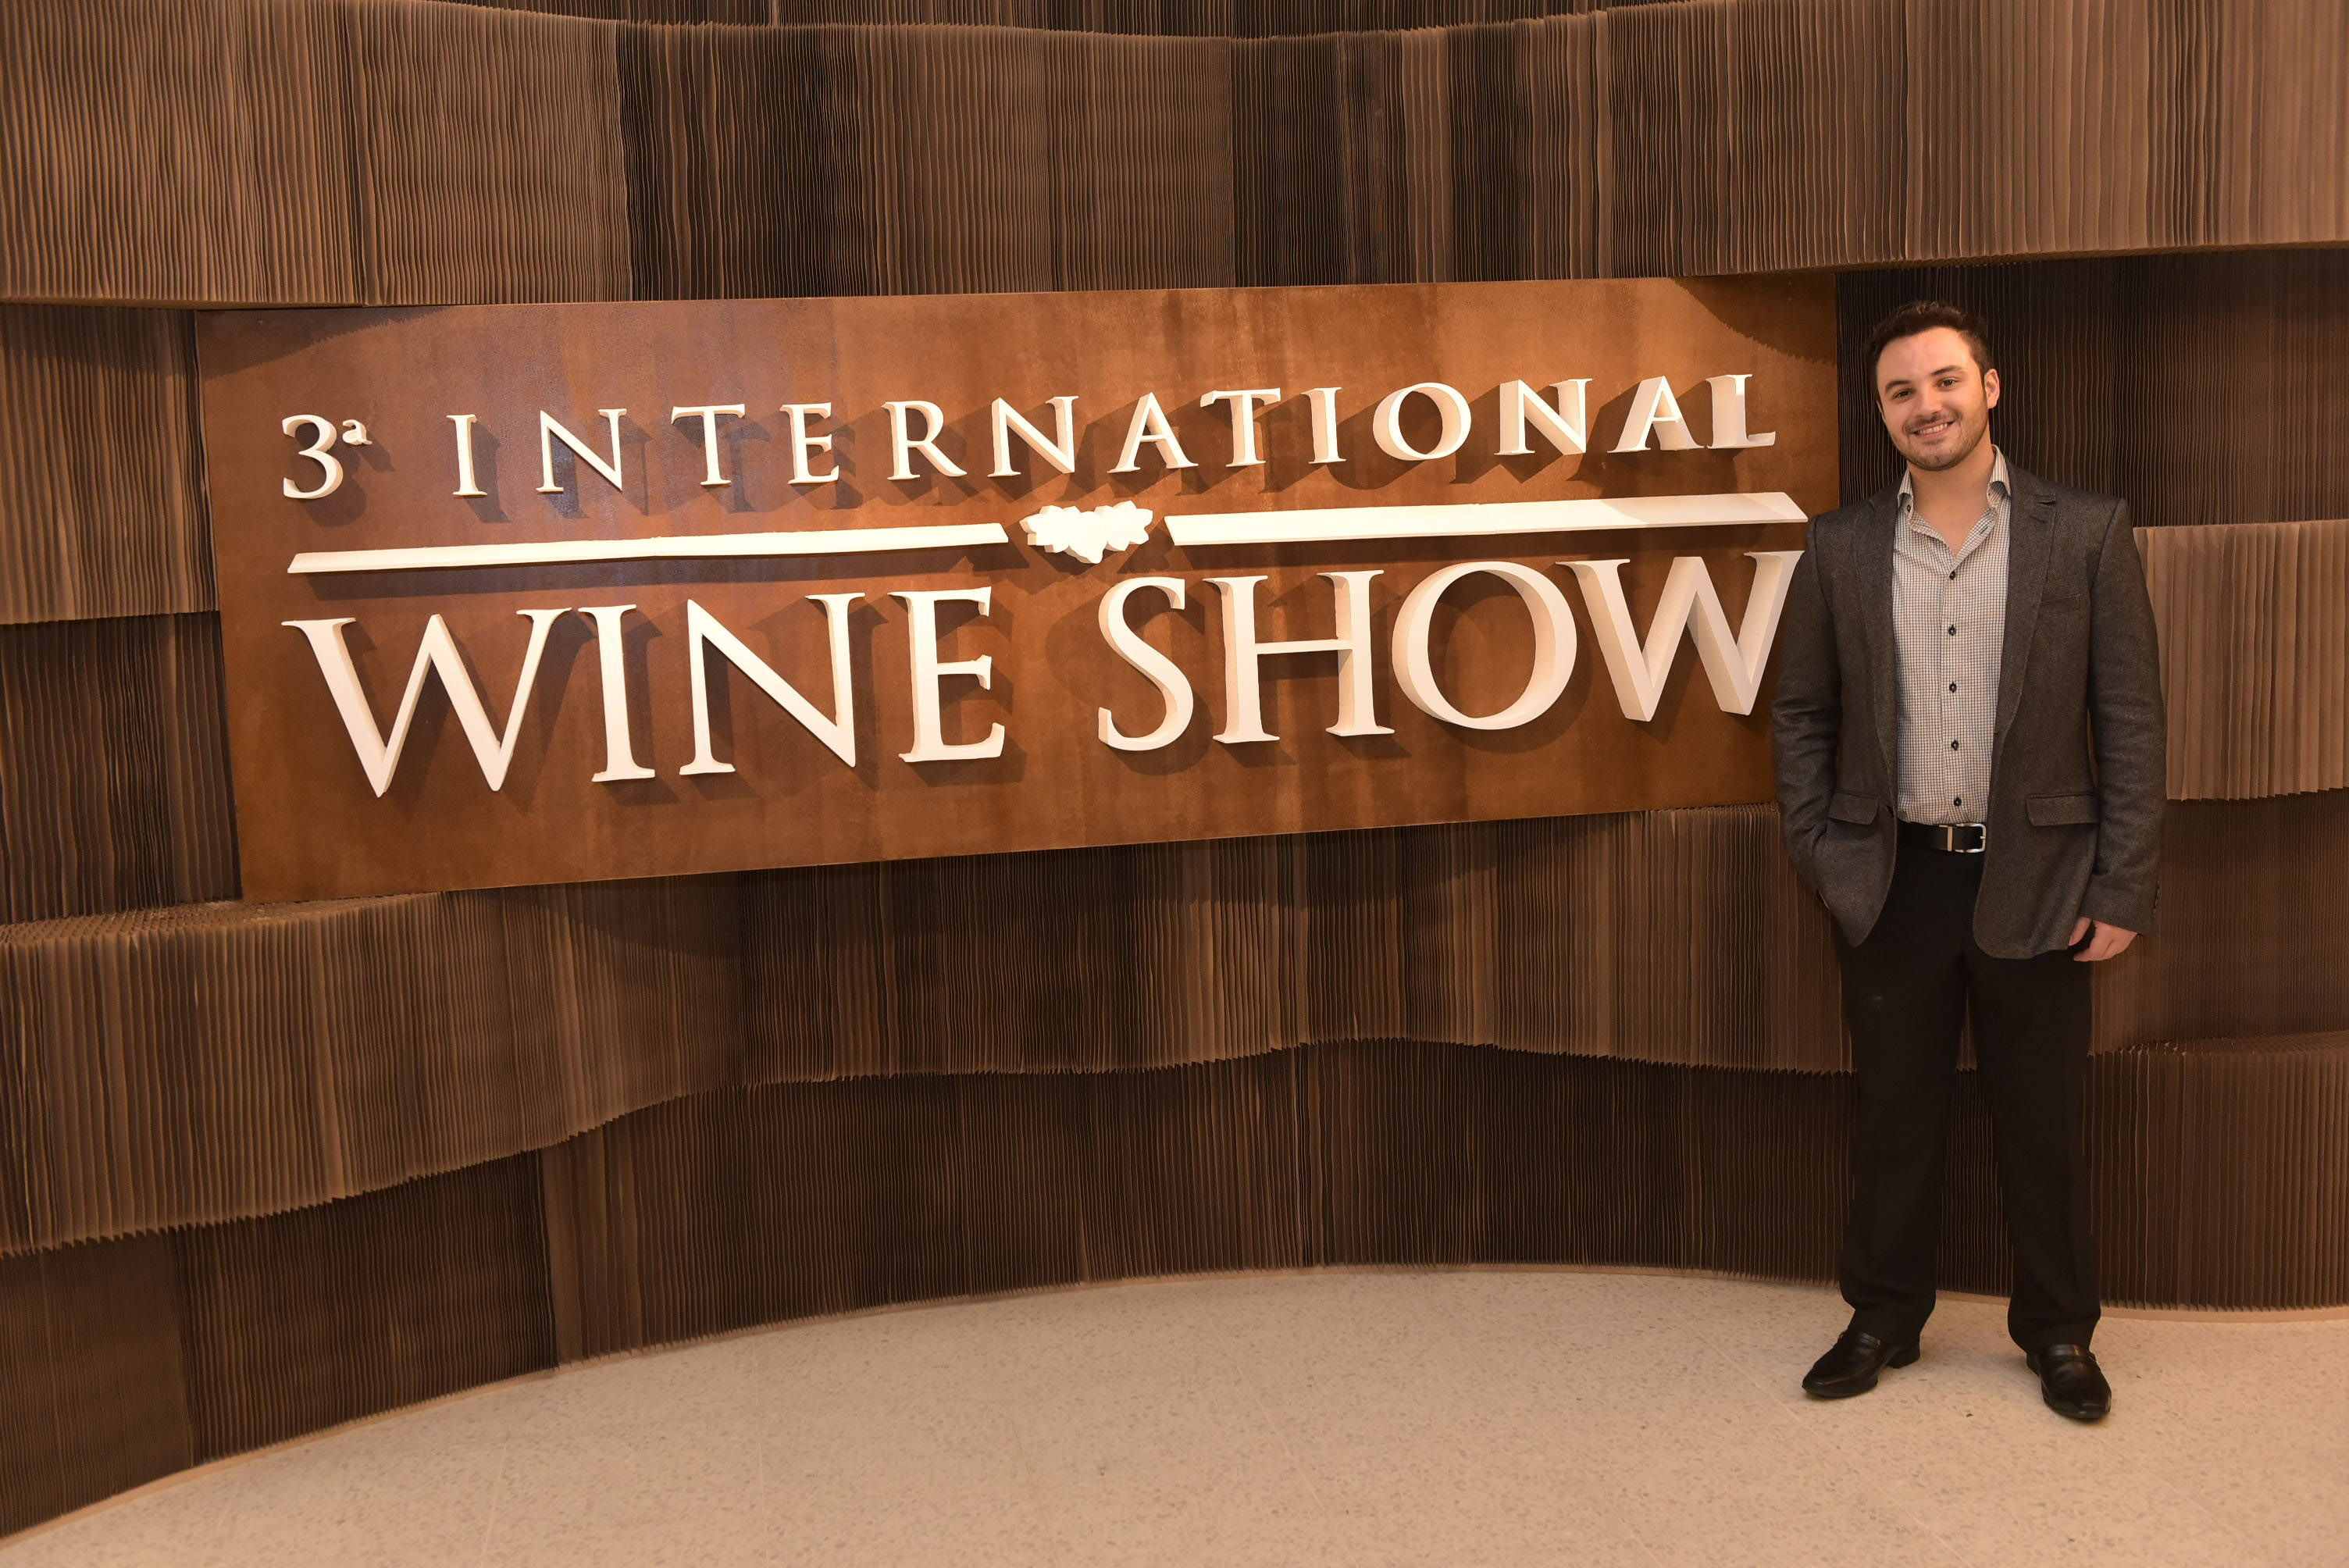 International_Wine_Show_-_Francisco_Separovic_-_DRZ_7592.jpg